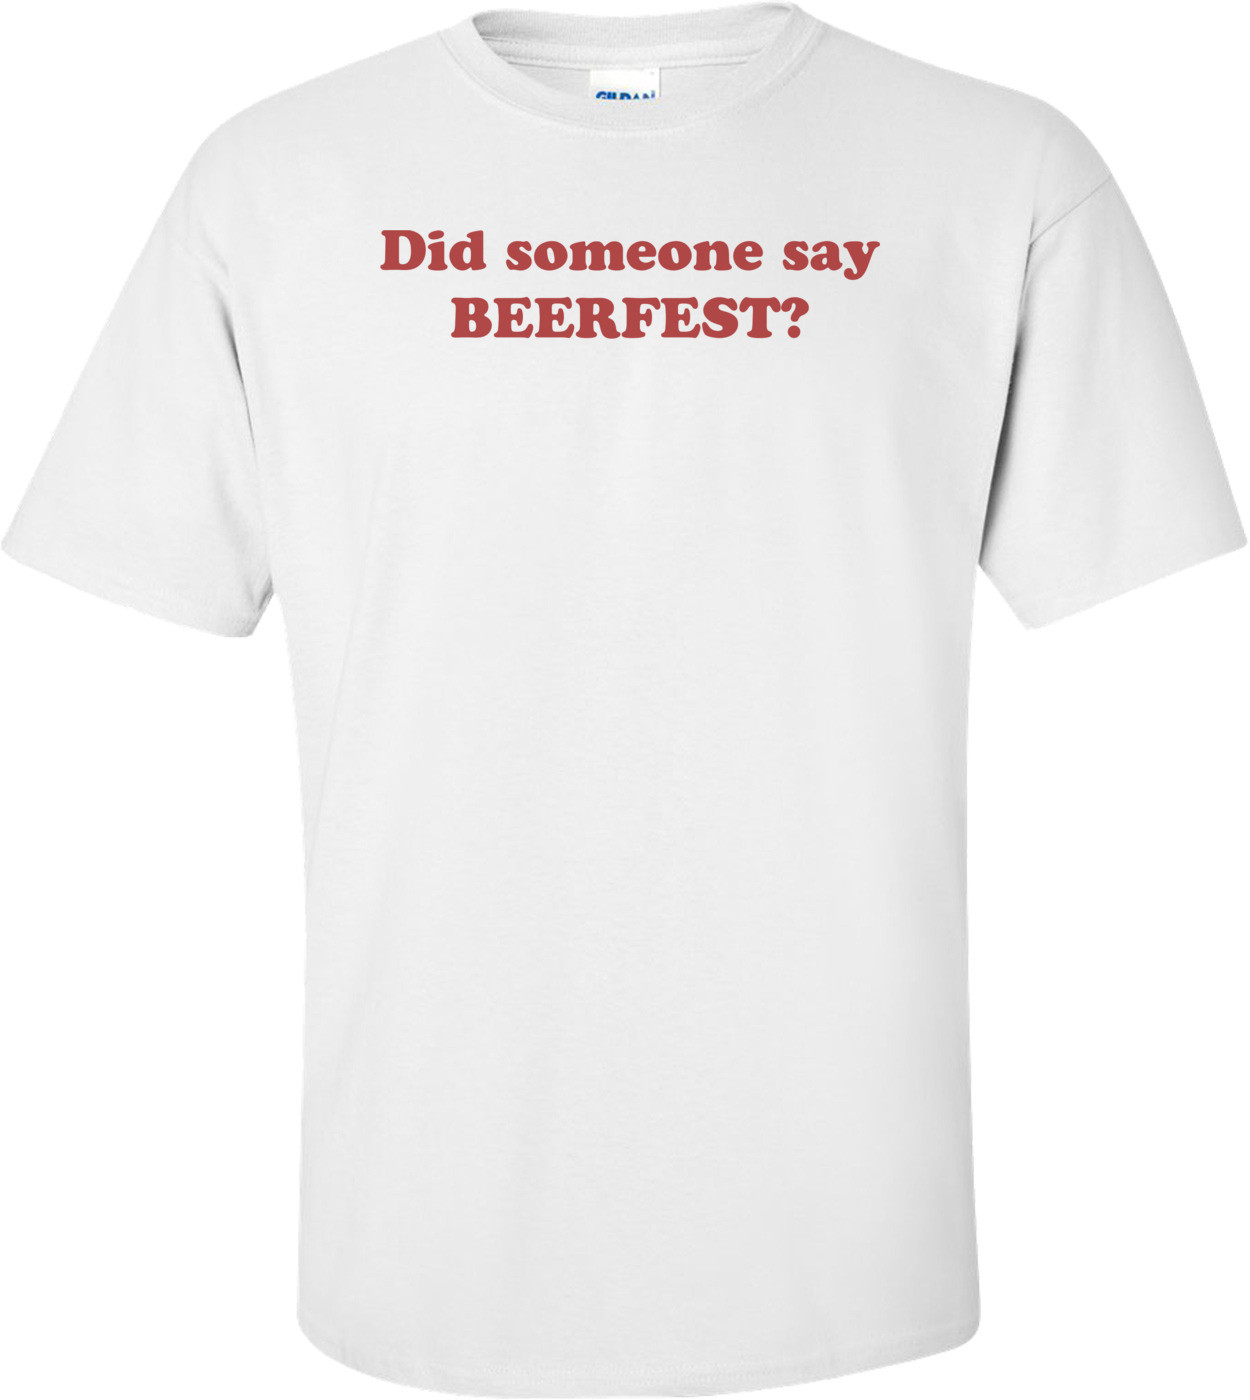 Did someone say BEERFEST? Shirt